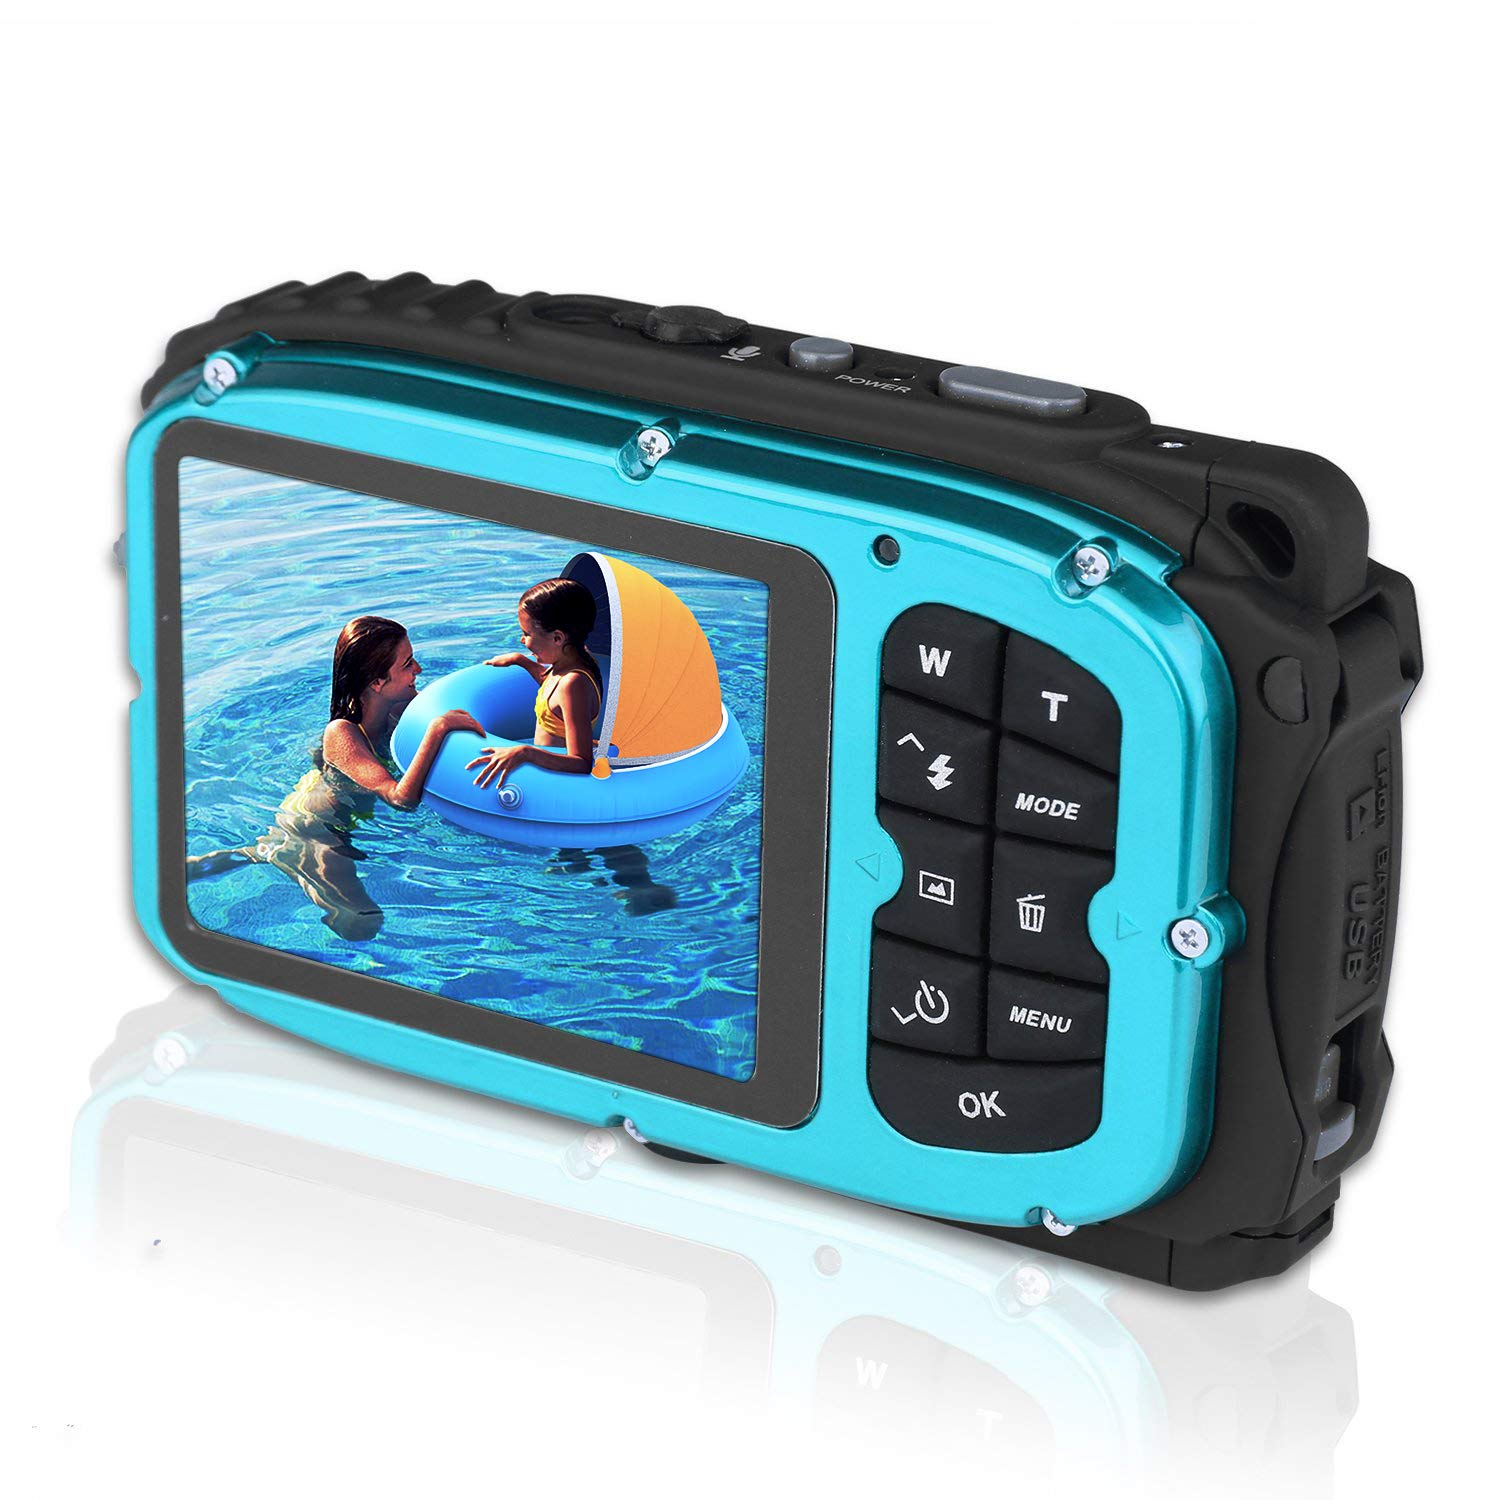 GordVE 2.7 Inch LCD Cameras 16MP Digital Camera Underwater 10m Waterproof Camera+ 8x Zoom by GordVE (Image #1)